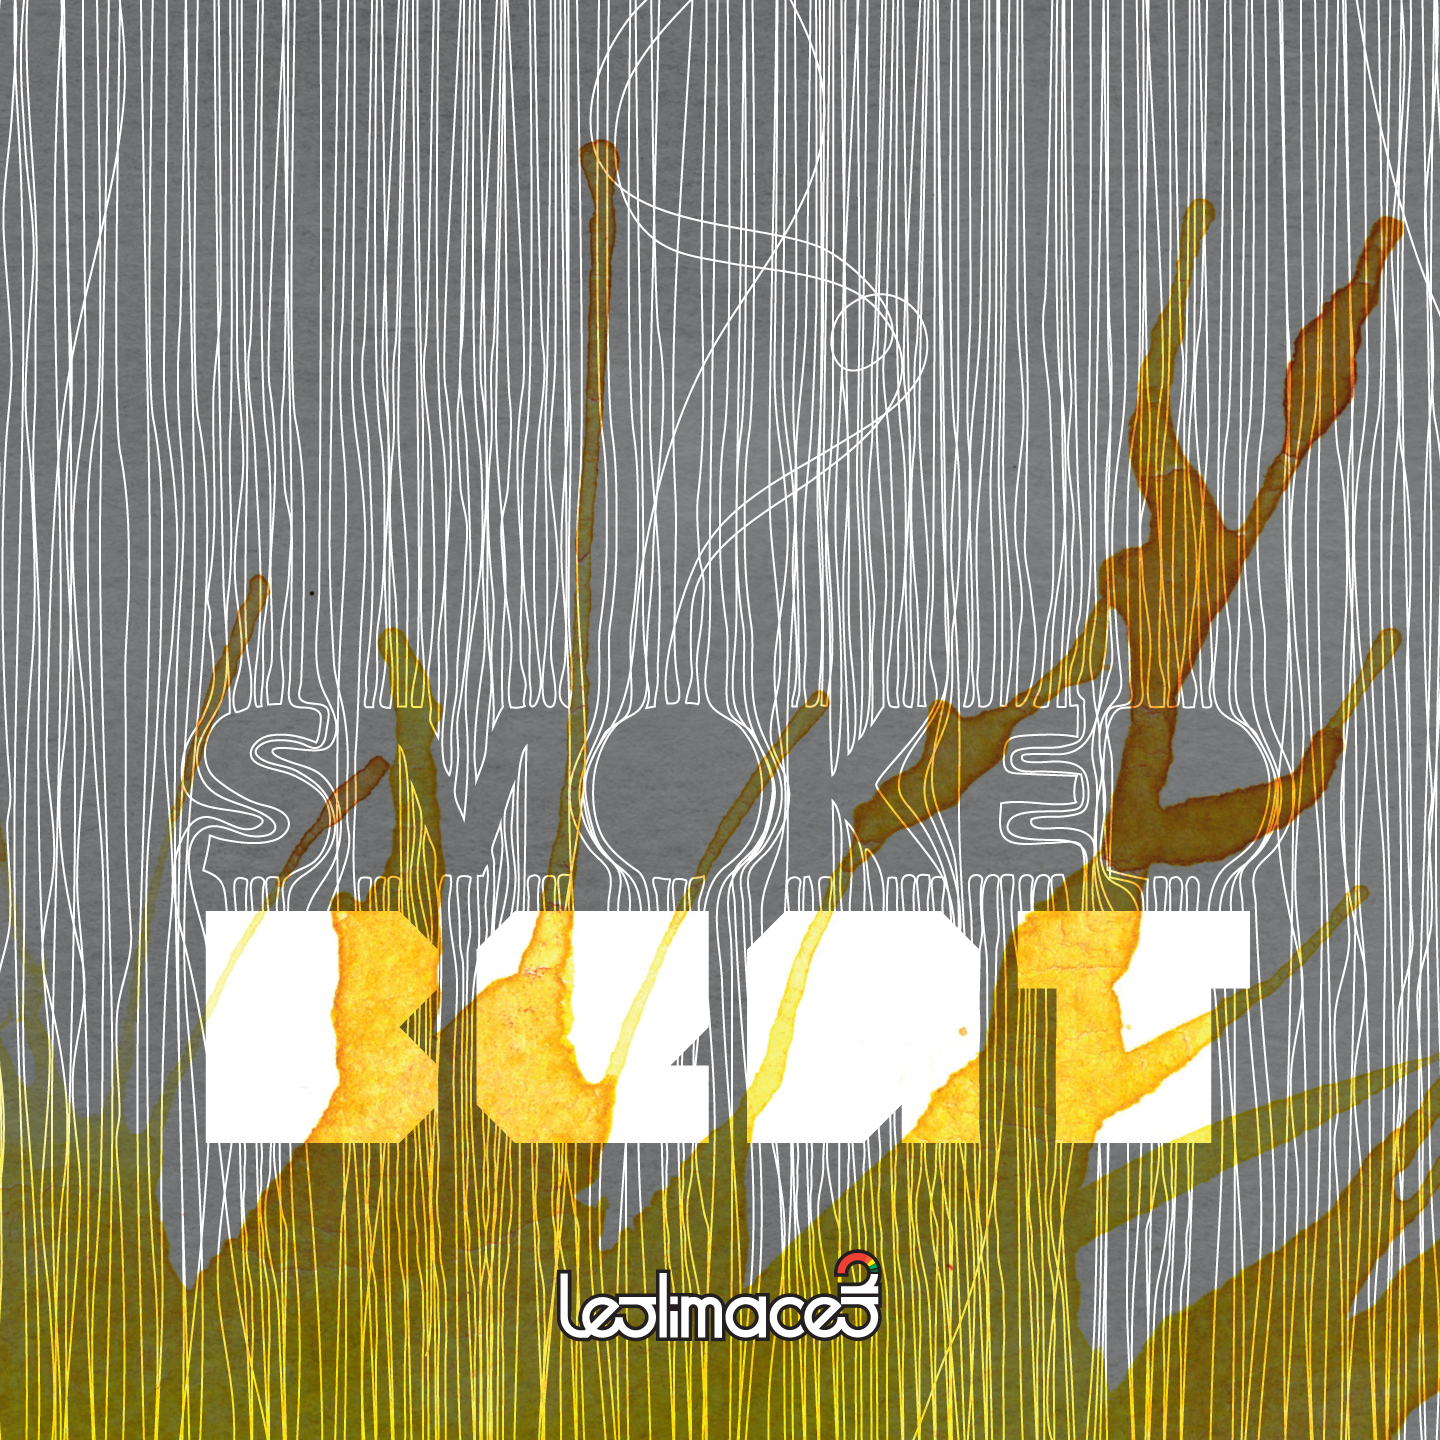 Les Limaces - Smoked Beat